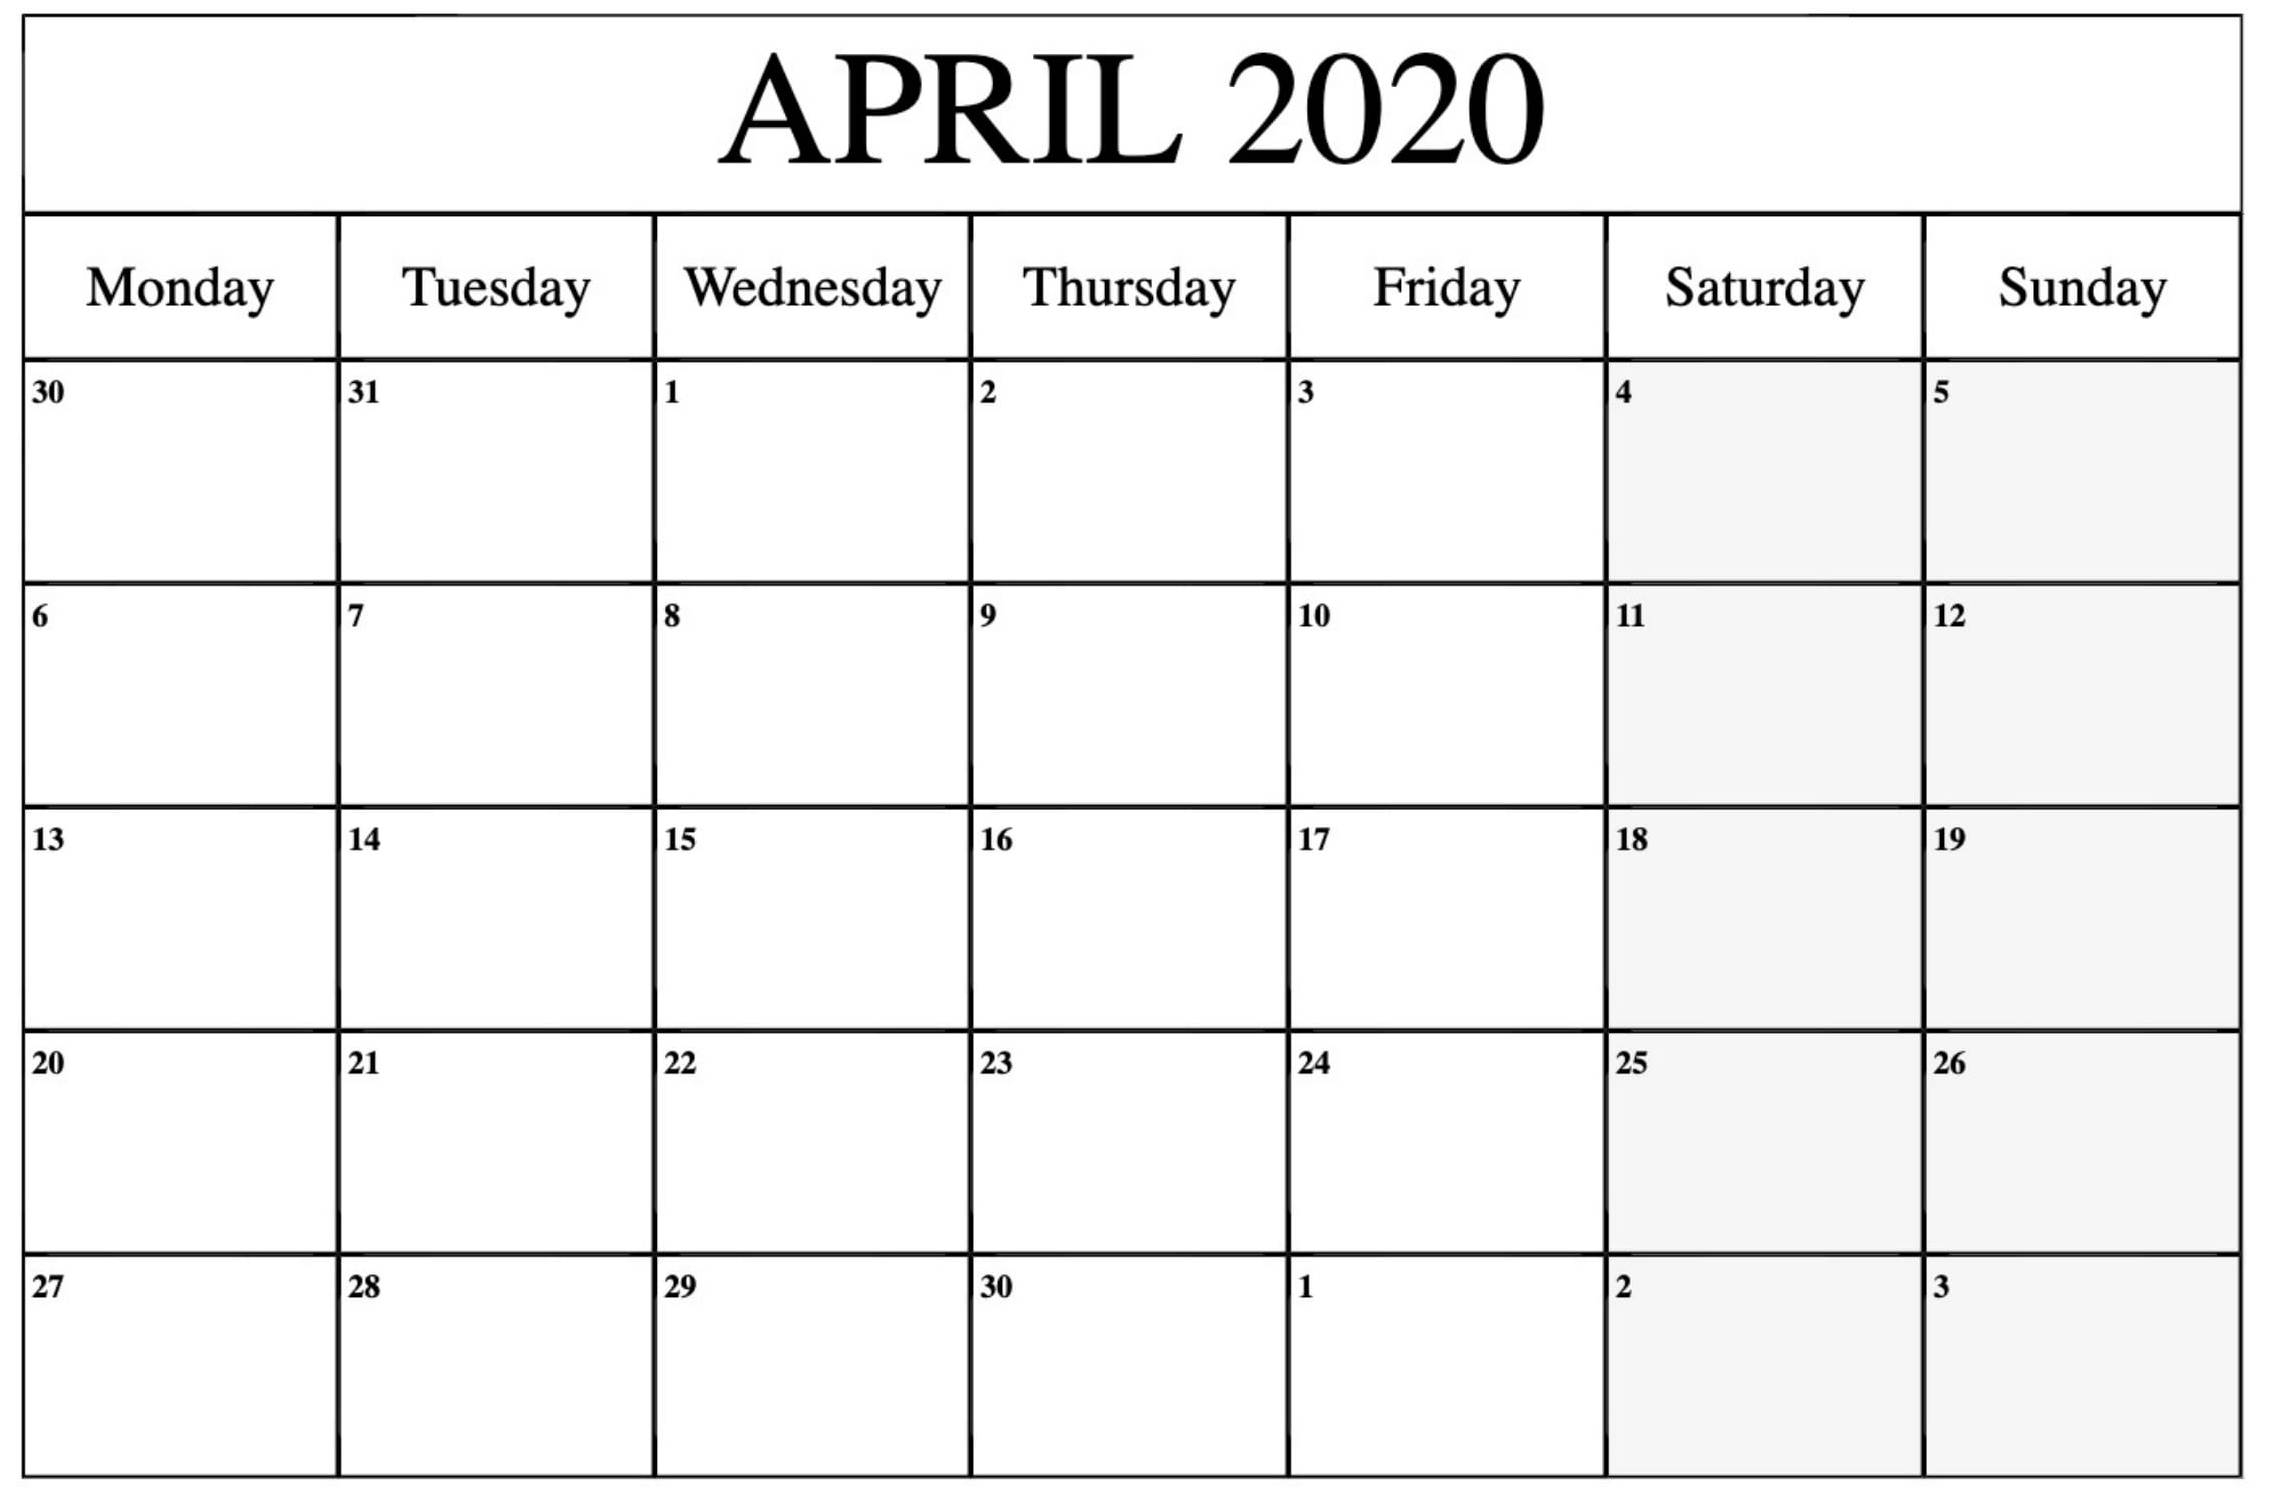 Blank April 2020 Calendar Printable With Notes Pdf  Set inside Free Printable April 2020 Calendar